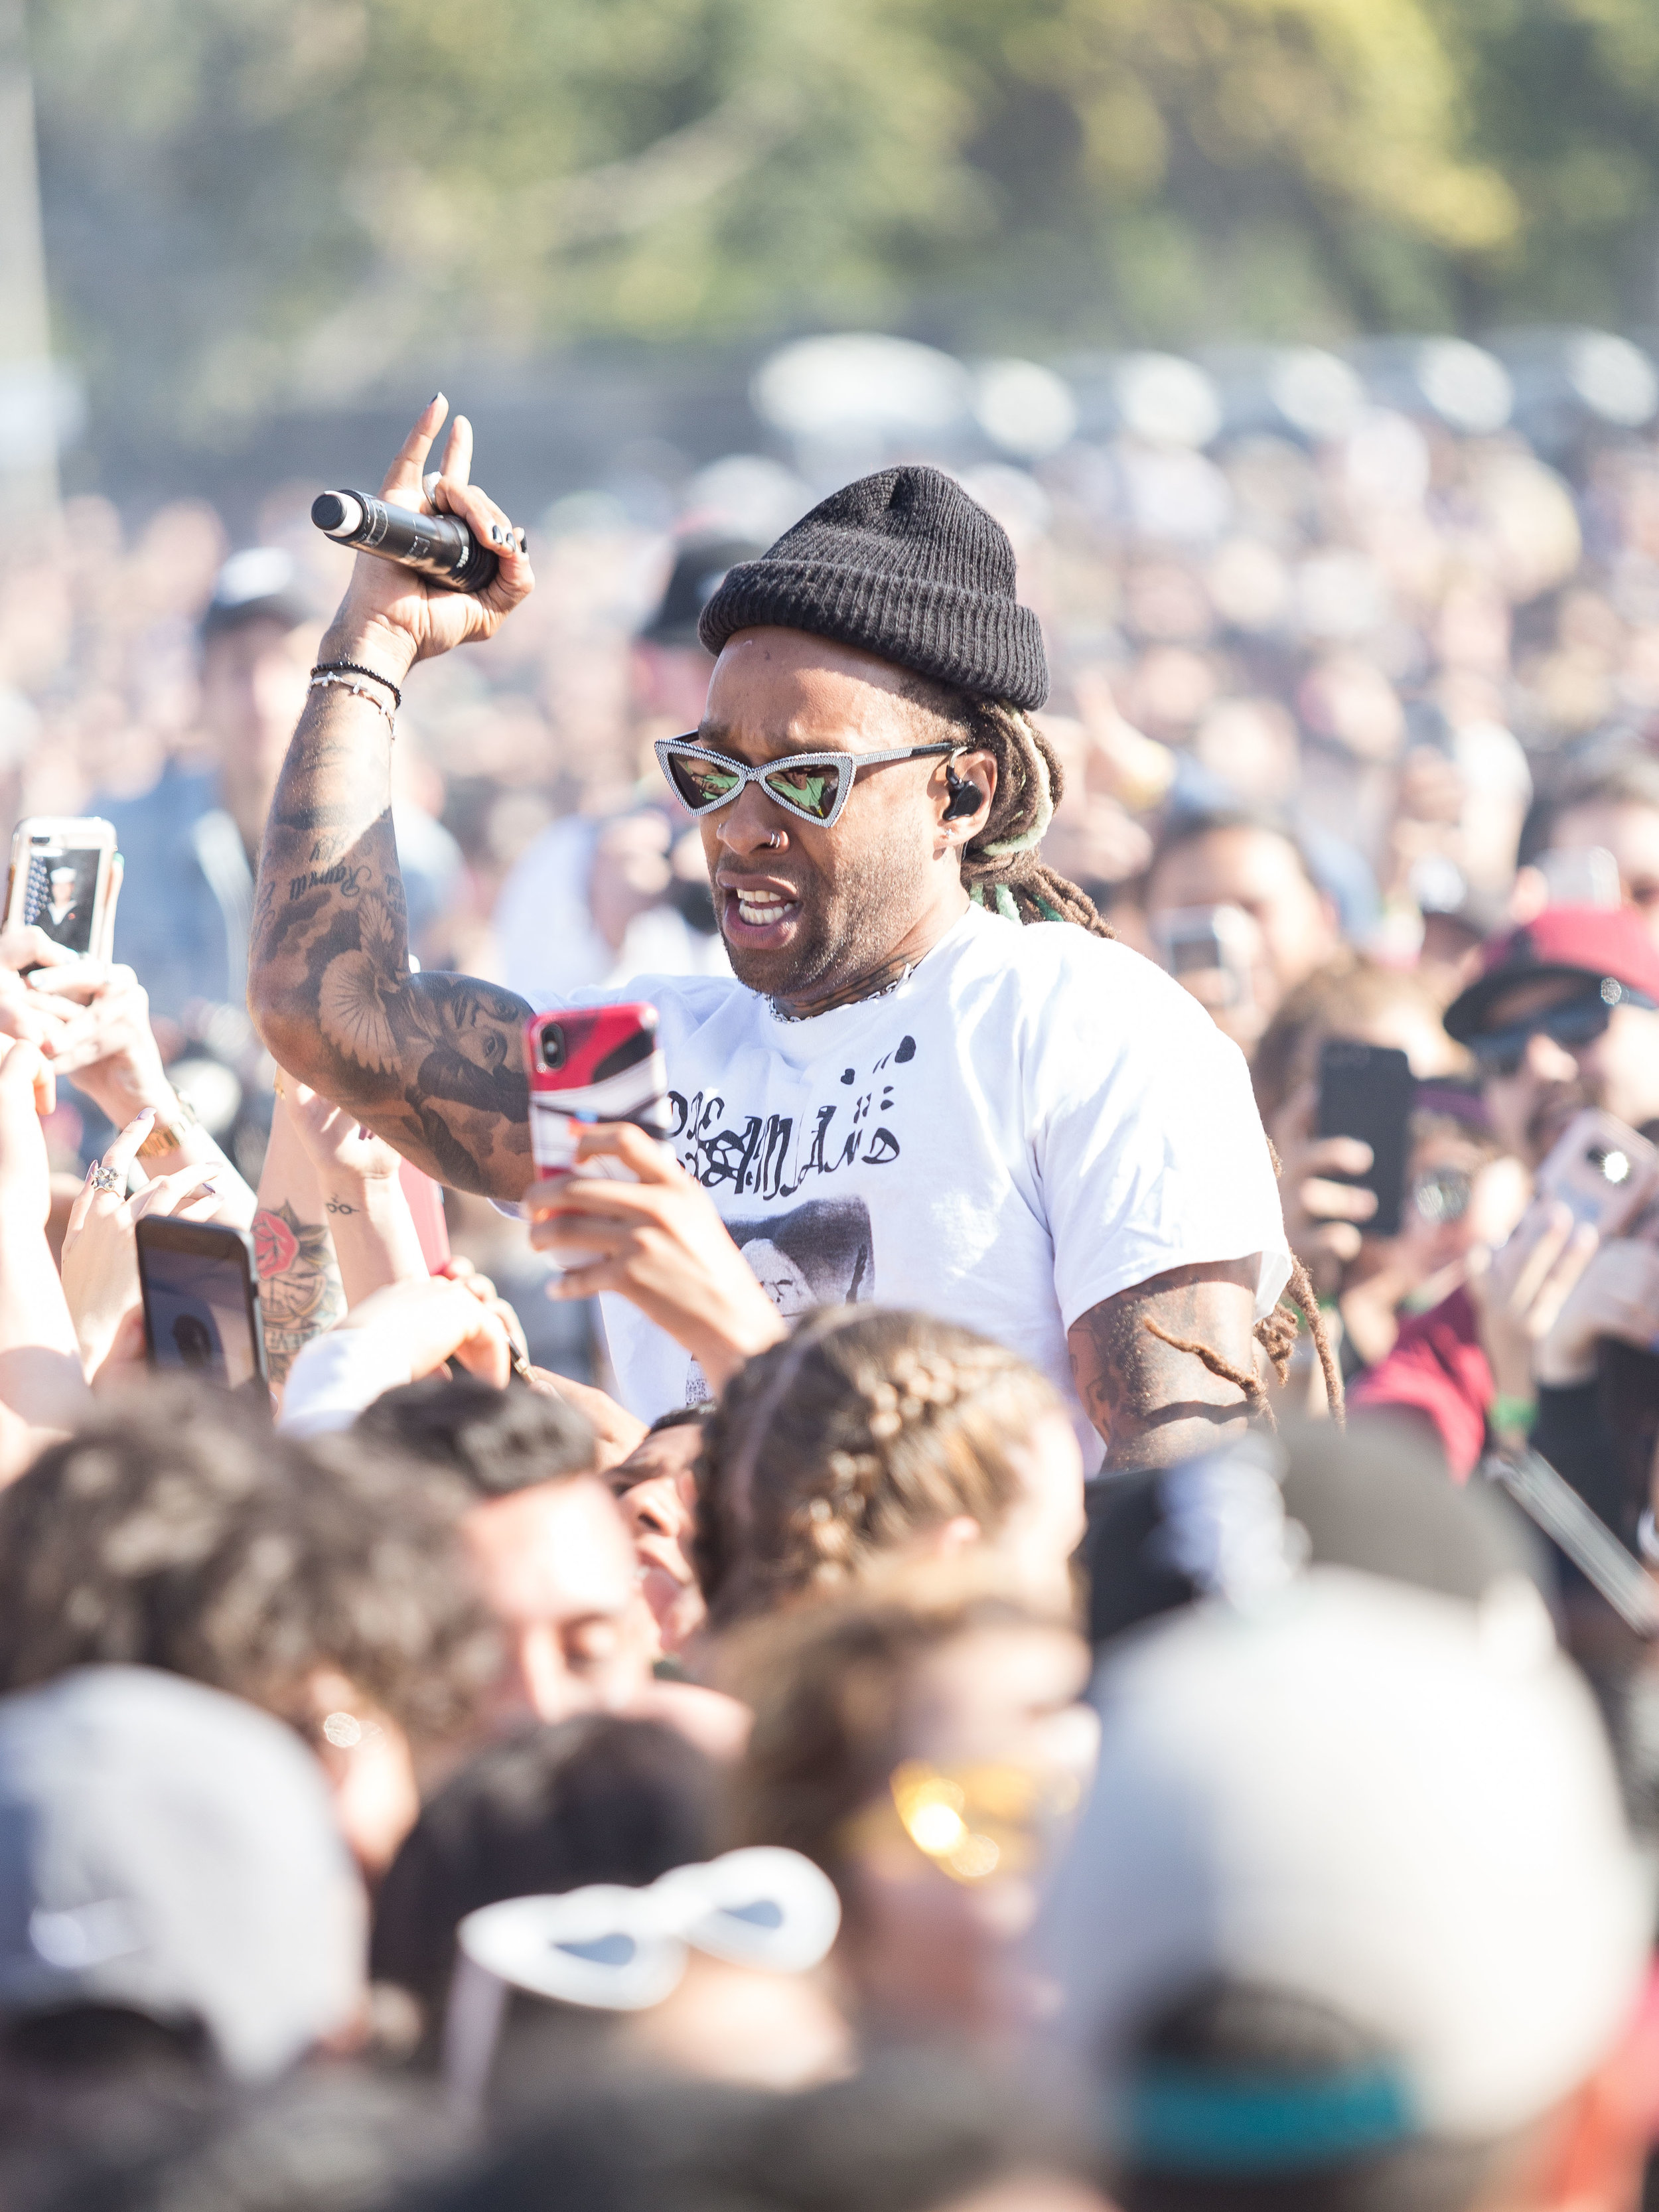 Artists Ty Dolla $ign (Tyrone William Griffin) begins his performance by entering the photo pit and rapping along with the crowd at the the Stick.E.Vape during The Smokers Club Festival at the Queen Mary in Long Beach, California on Sunday, April 29th 2018. (Thane Fernandes/ Corsair Photo)